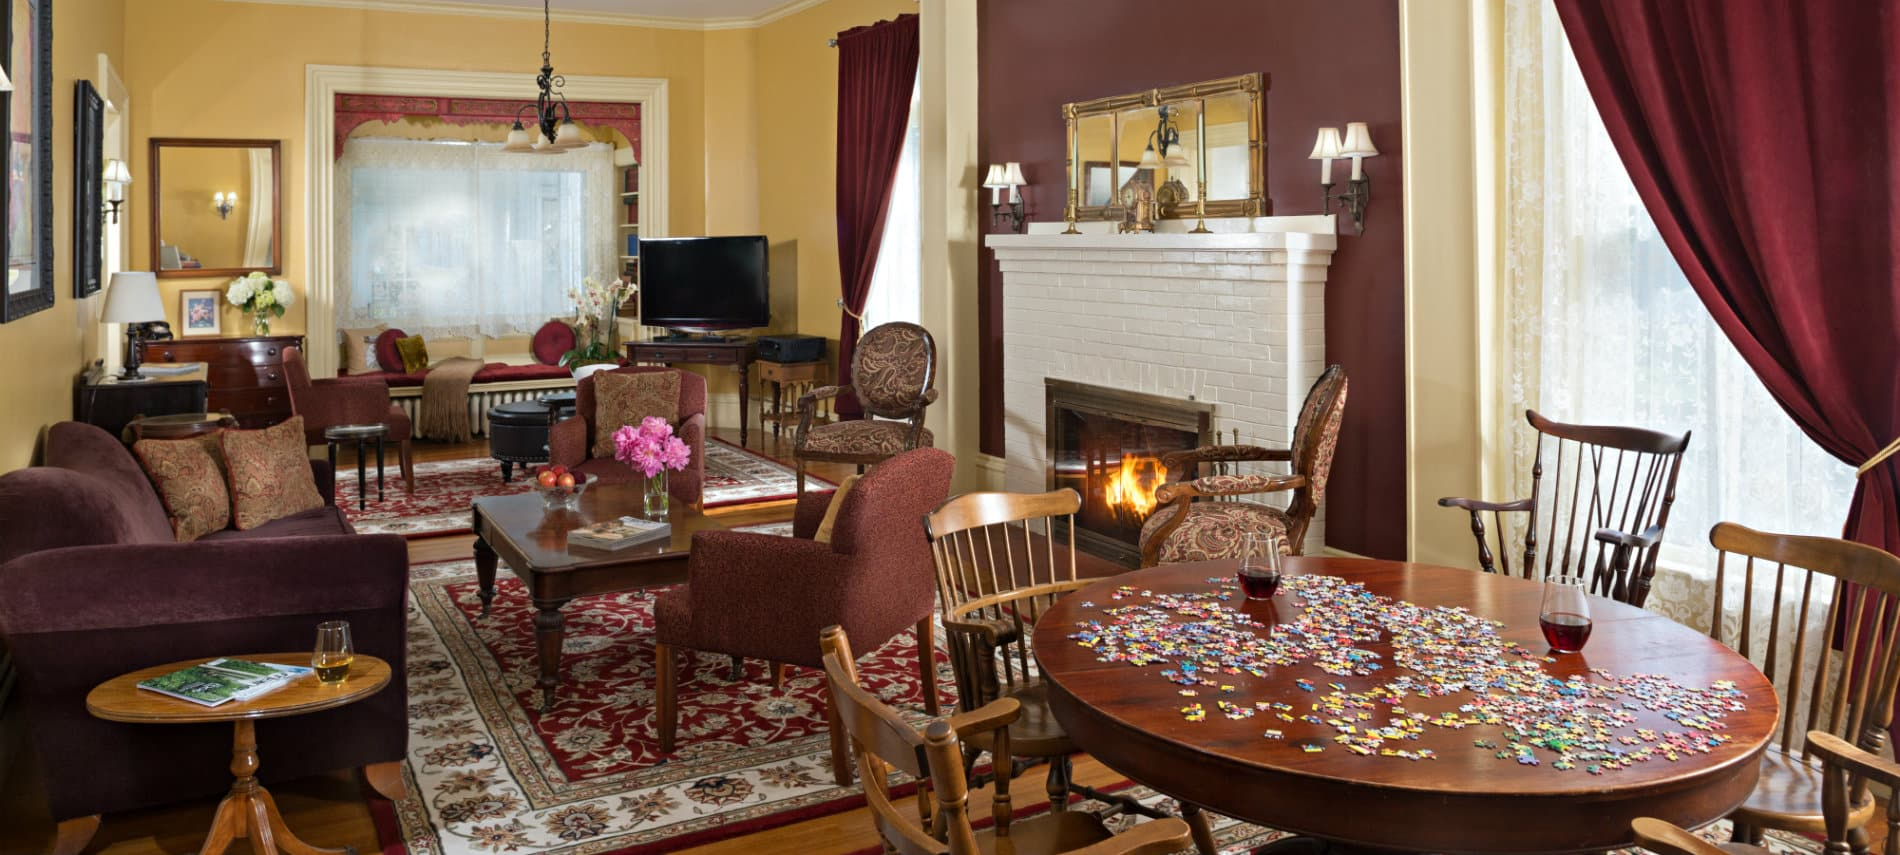 A parlor with a seating area in front of a white fireplace and a table with a puzzle on it.